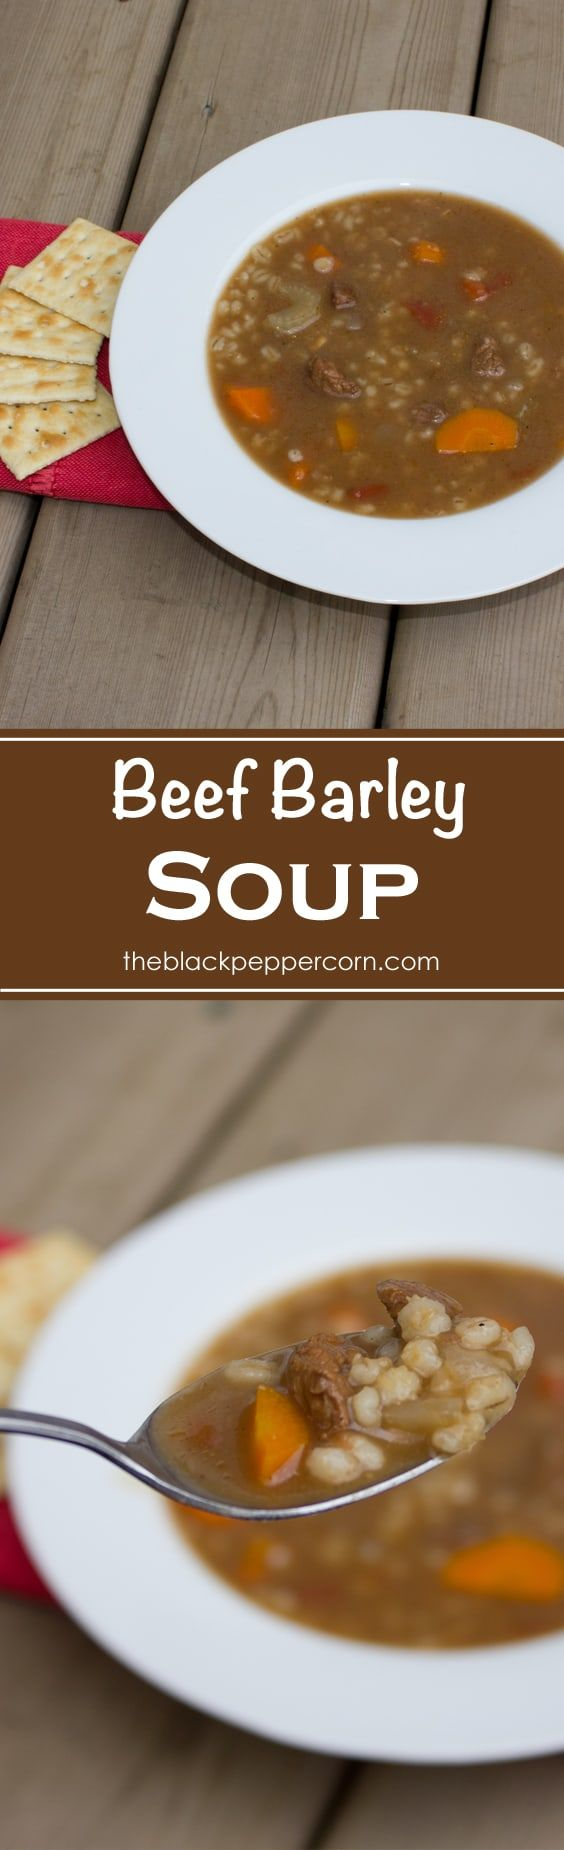 Homemade Beef Barley Soup - This traditional homemade beef barley soup recipe is a classic with stewing beef, carrots, celery, onion, tomatoes and barley in a wonderfully rich broth. via @blackpeppercorn